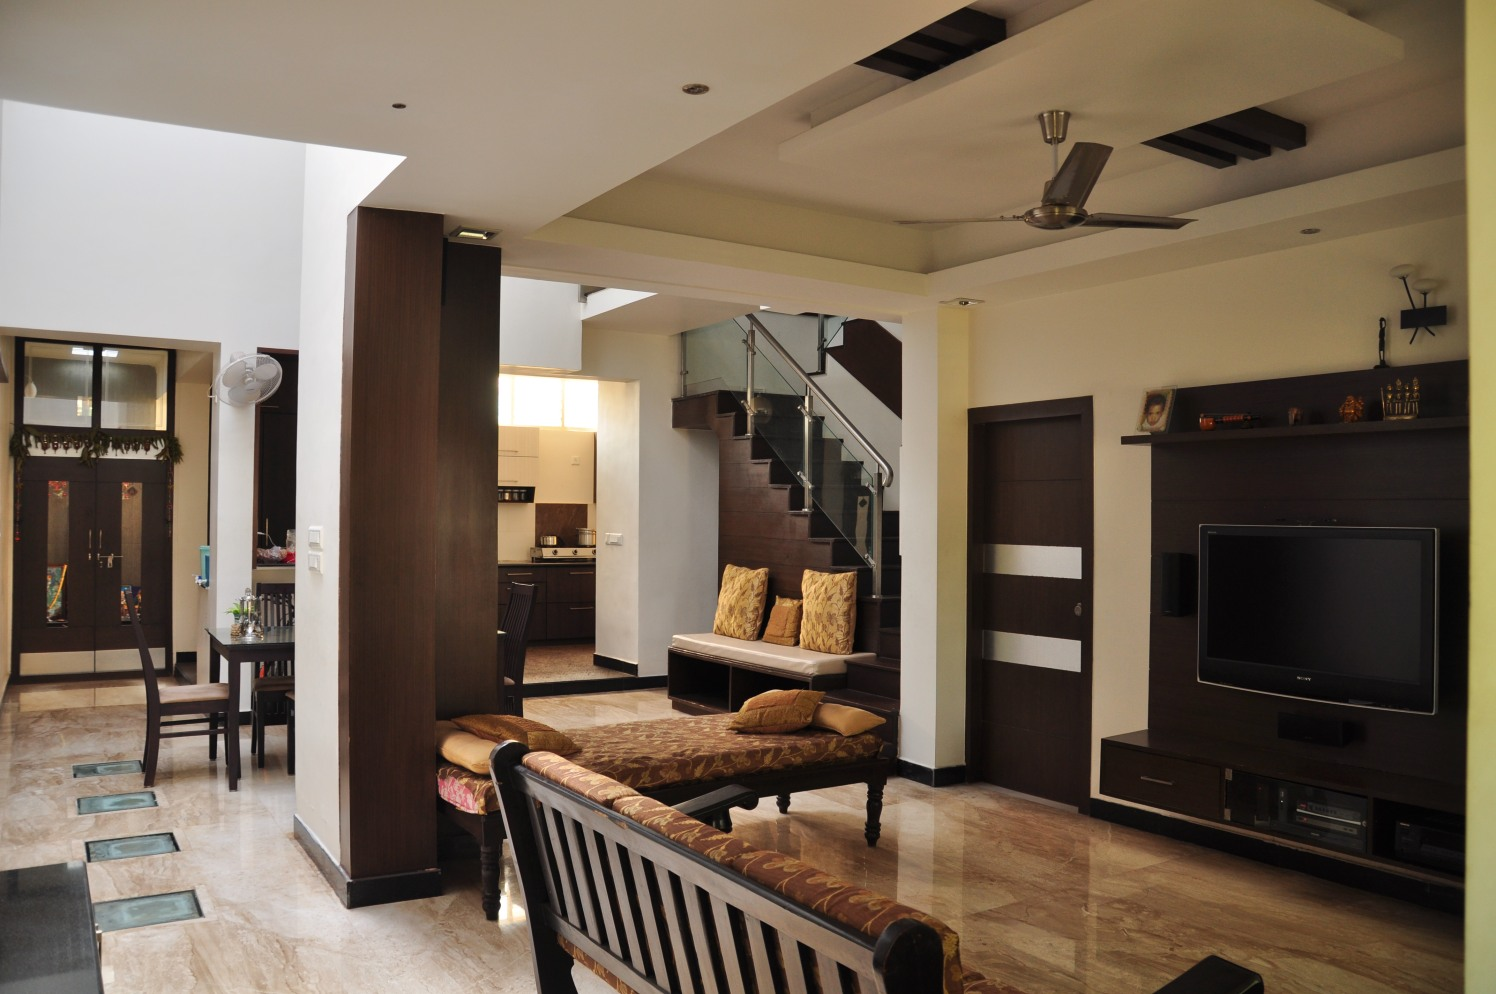 Spacious Living Room with Wooden Sofa and Brown Marble Flooring by Manasa Bharadwaj Living-room Contemporary | Interior Design Photos & Ideas